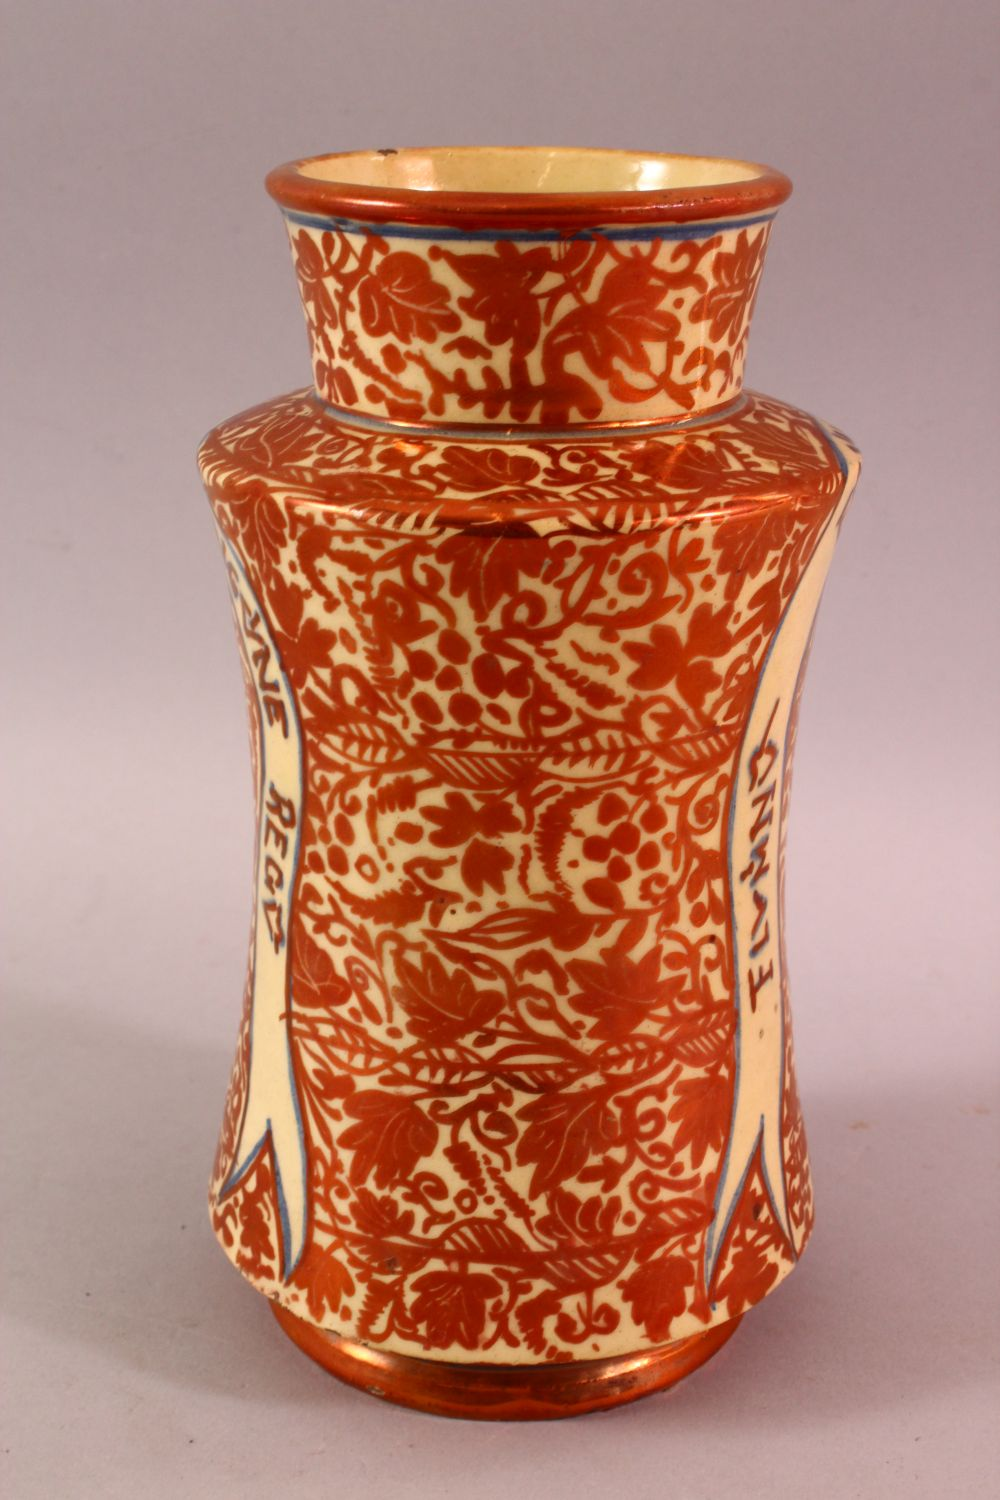 A SPANISH MORESQUE LUSTRE POTTERY MEDICINE JAR, decorated with a copper lustre and lion - Image 3 of 5